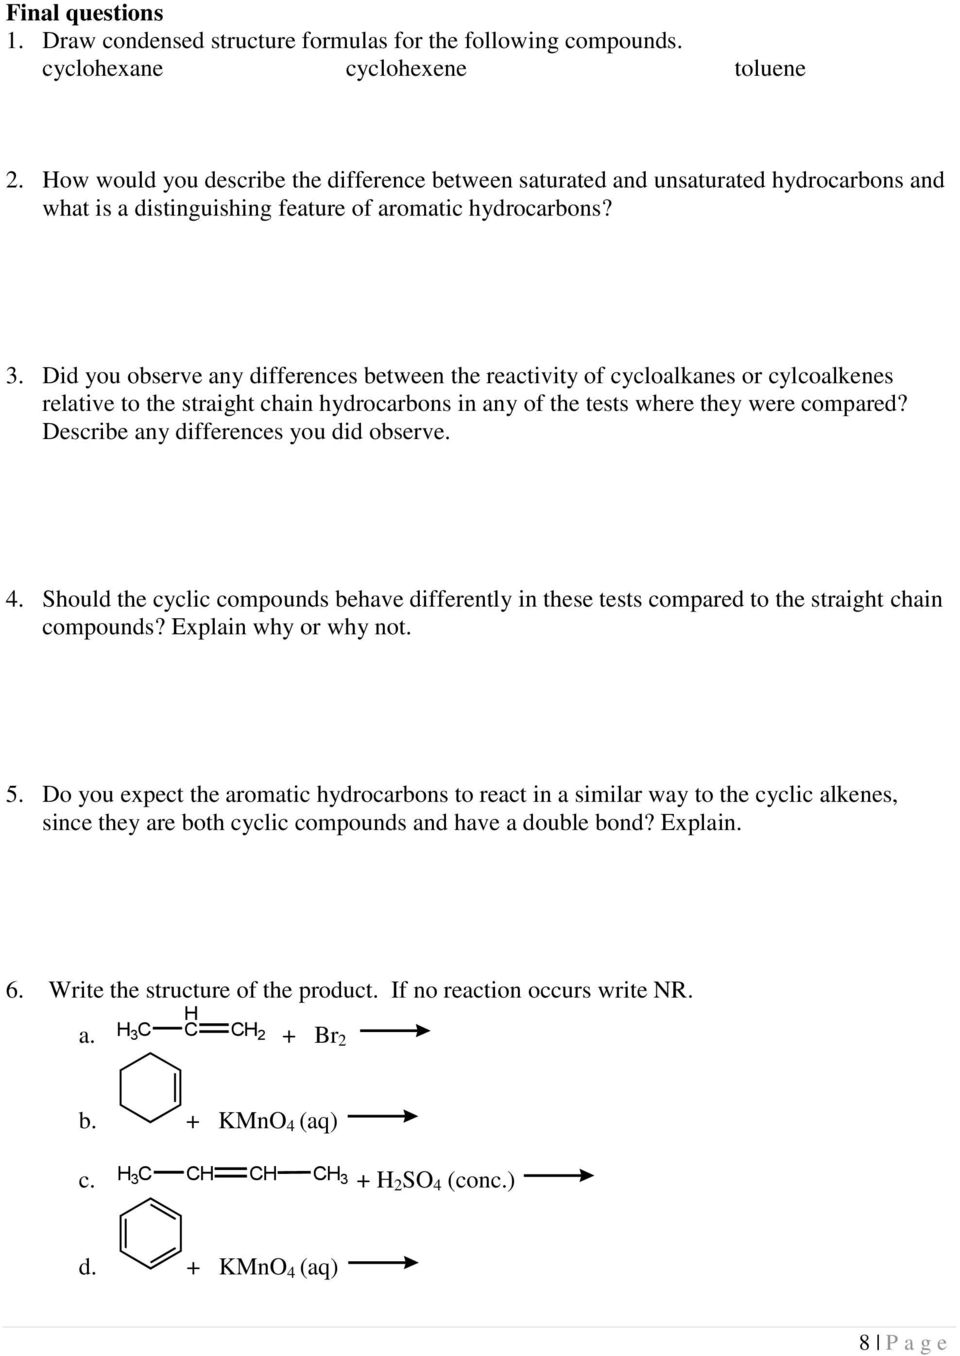 Did you observe any differences between the reactivity of cycloalkanes or  cylcoalkenes relative to the straight